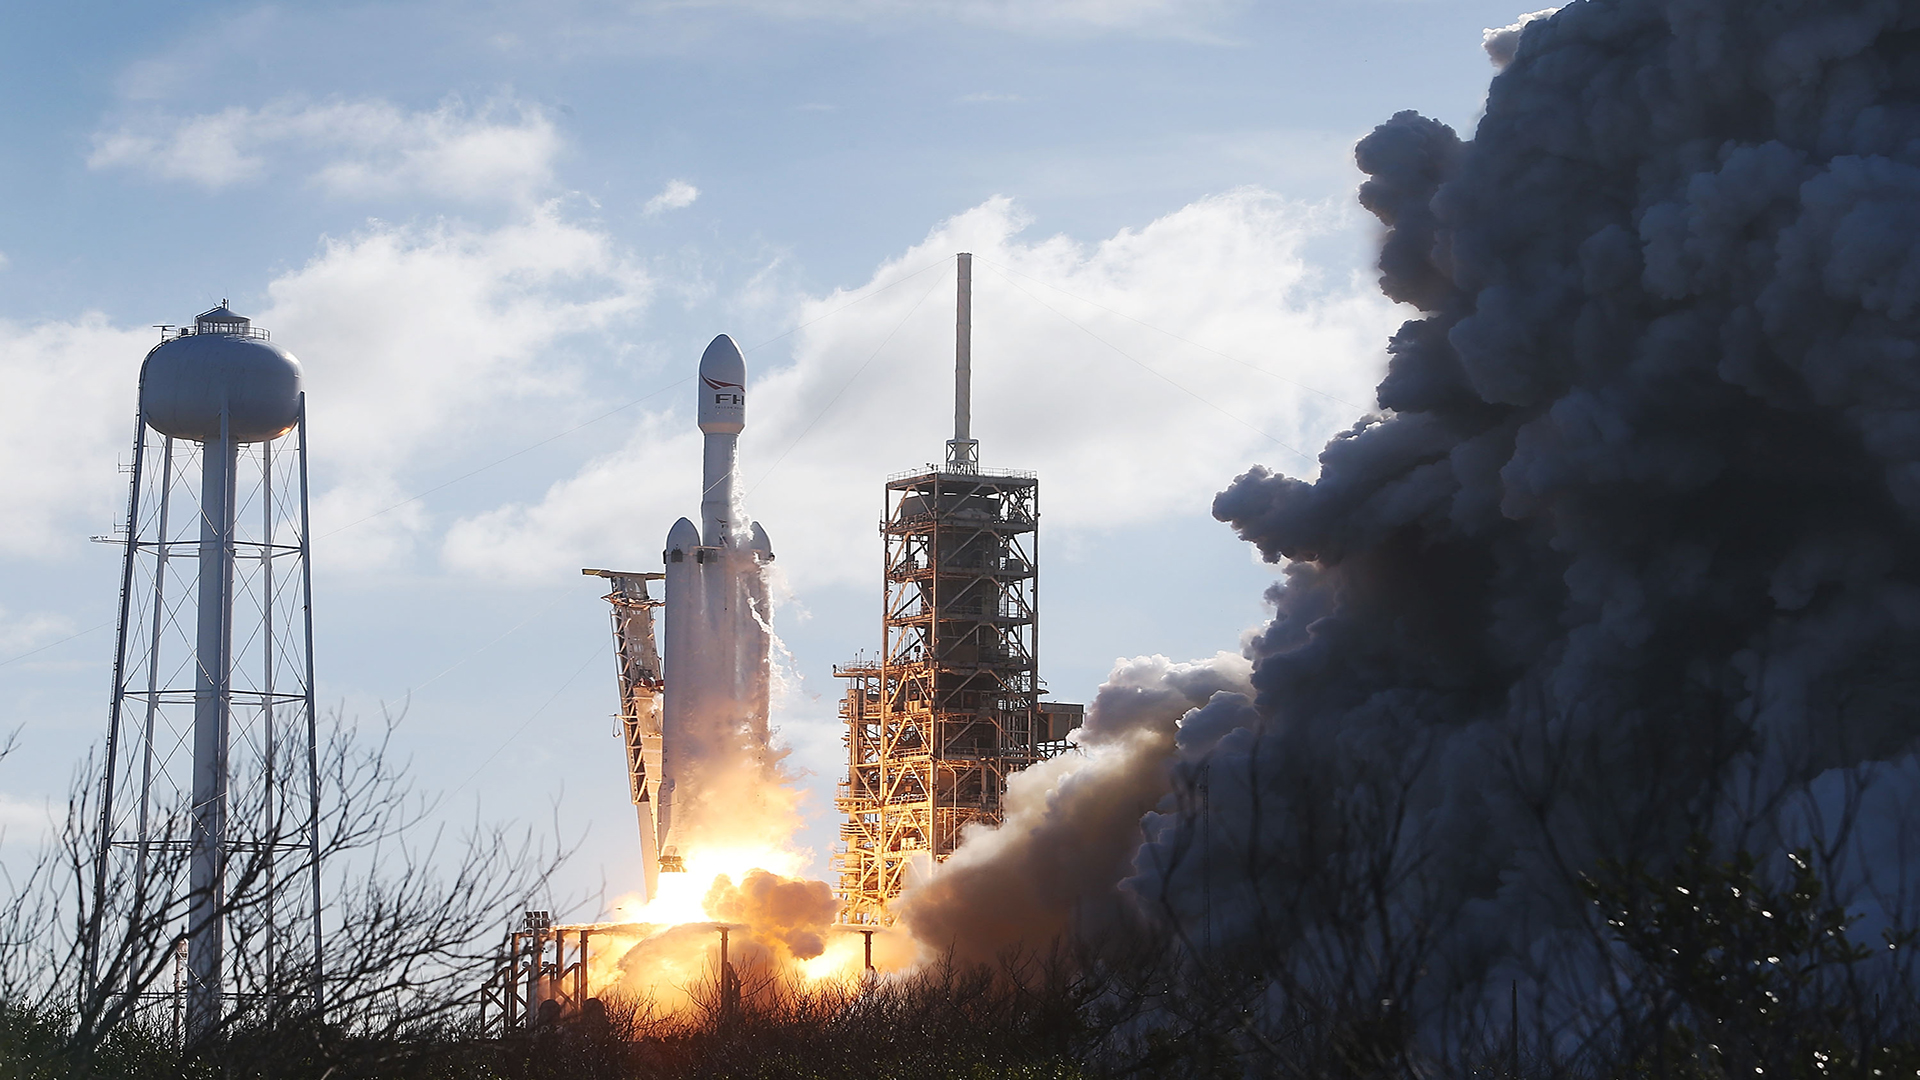 SpaceX warns of sonic booms following Falcon Heavy launch